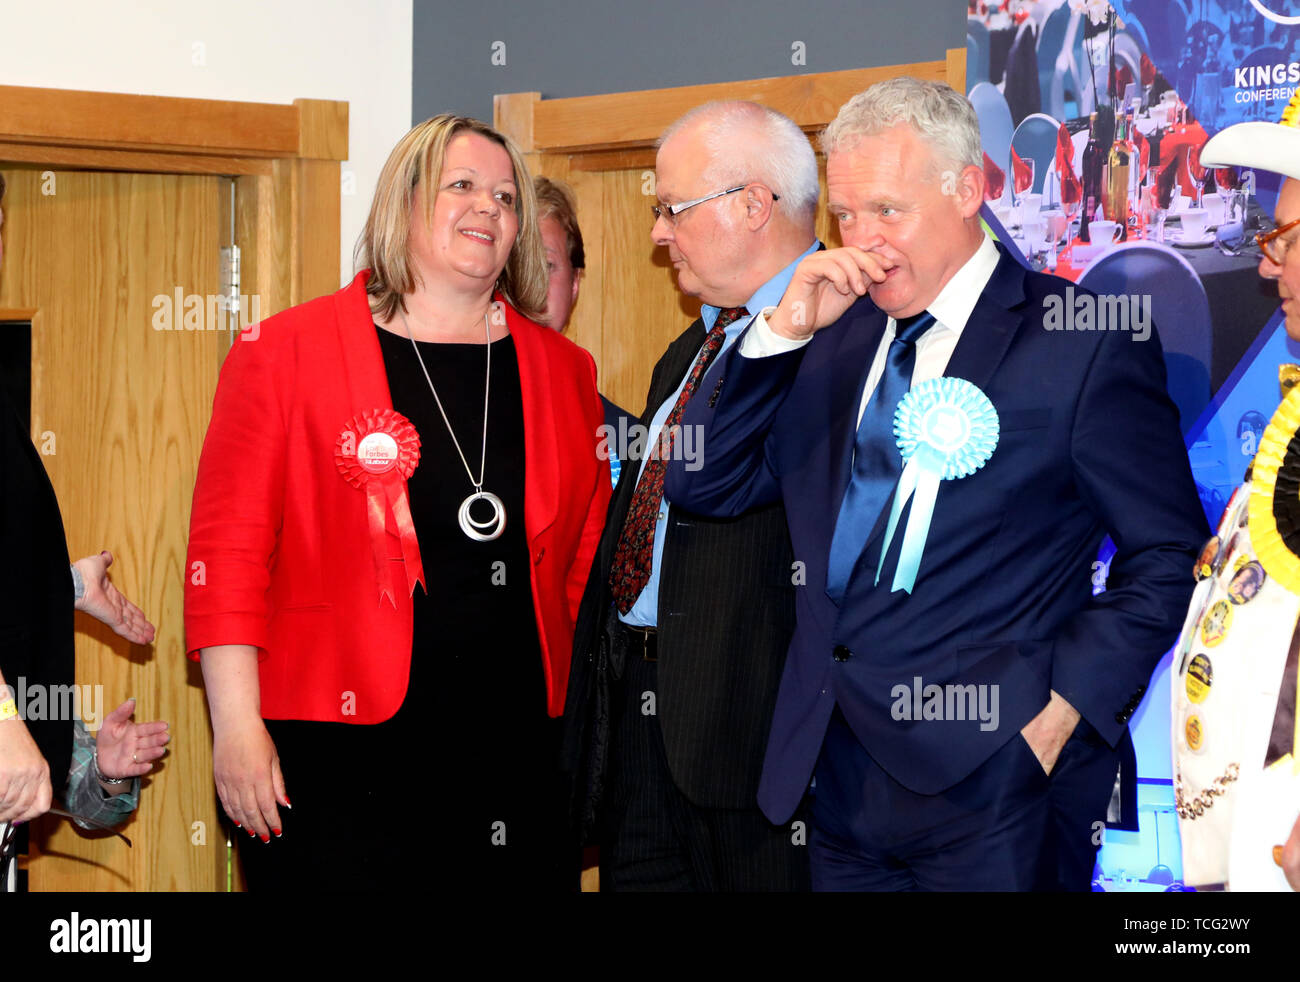 Peterborough, UK. 07th June, 2019. Candidates wait for the results before Lisa Forbes (Labour Party Candidate) became the new Member of Parliament for Peterborough, beating Mike Greene (Brexit Party candidate, 2nd right) into second place and Paul Bristow (Conservative Party candidate) was third. The by-election was held in Peterborough today after disgraced MP Fiona Onasanya was removed from her post as Peterborough MP when over 19,000 signed a recall petition, following her court appearance over a speeding ticket, and her spell in jail. Peterborough by-election, Peterborough, Cambridgeshire, - Stock Image